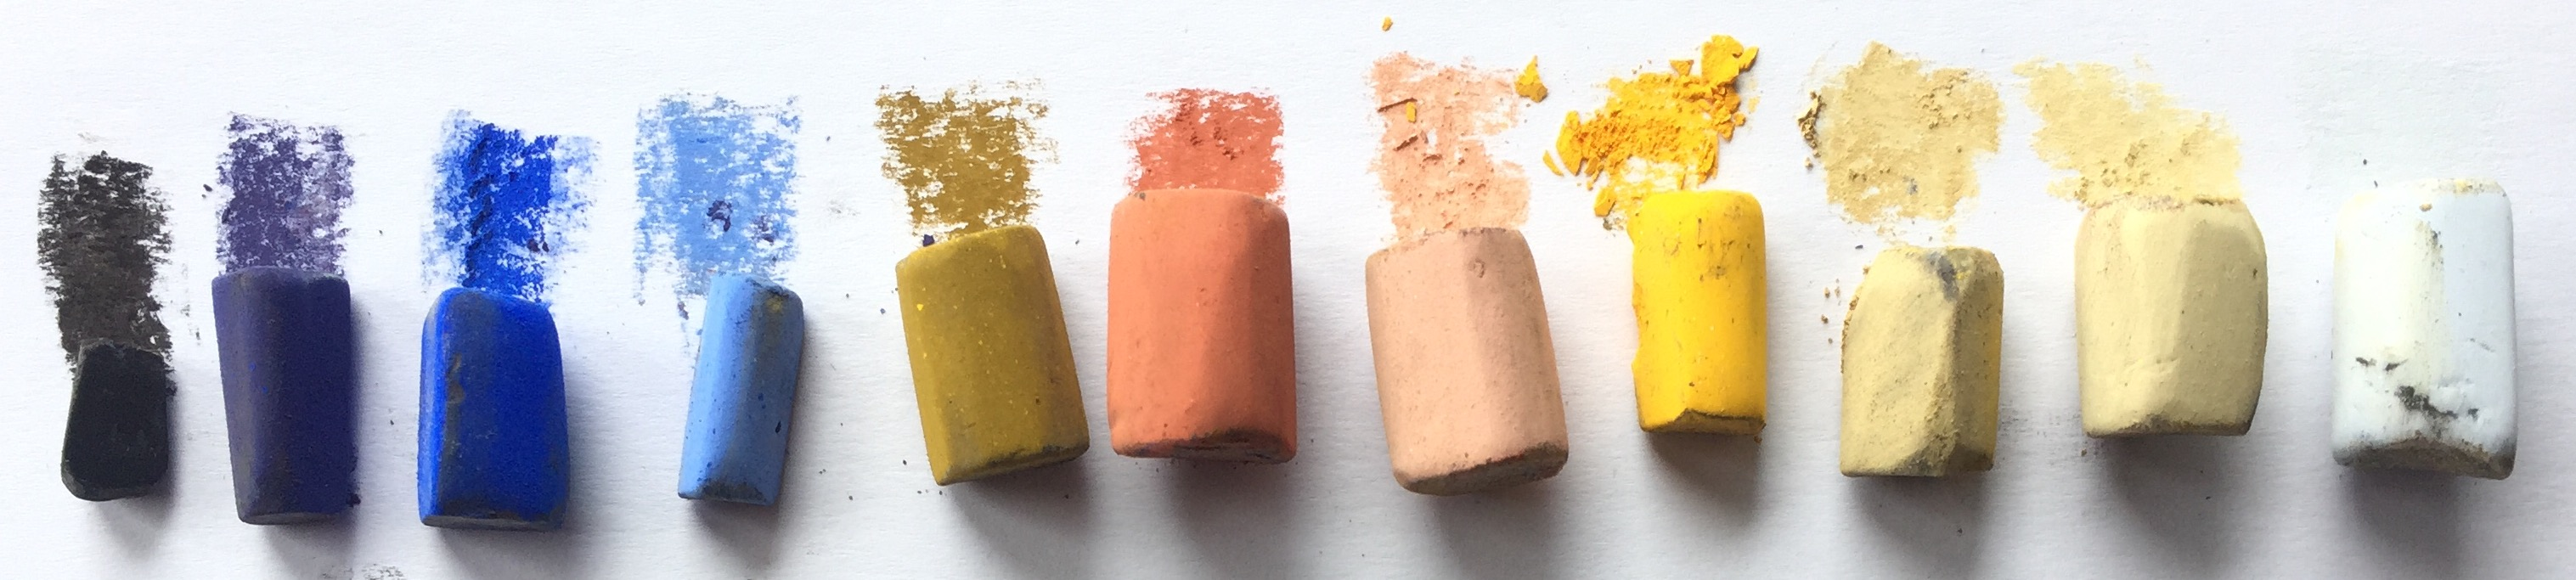 Breaking the rules: 11 Unison pastels used.